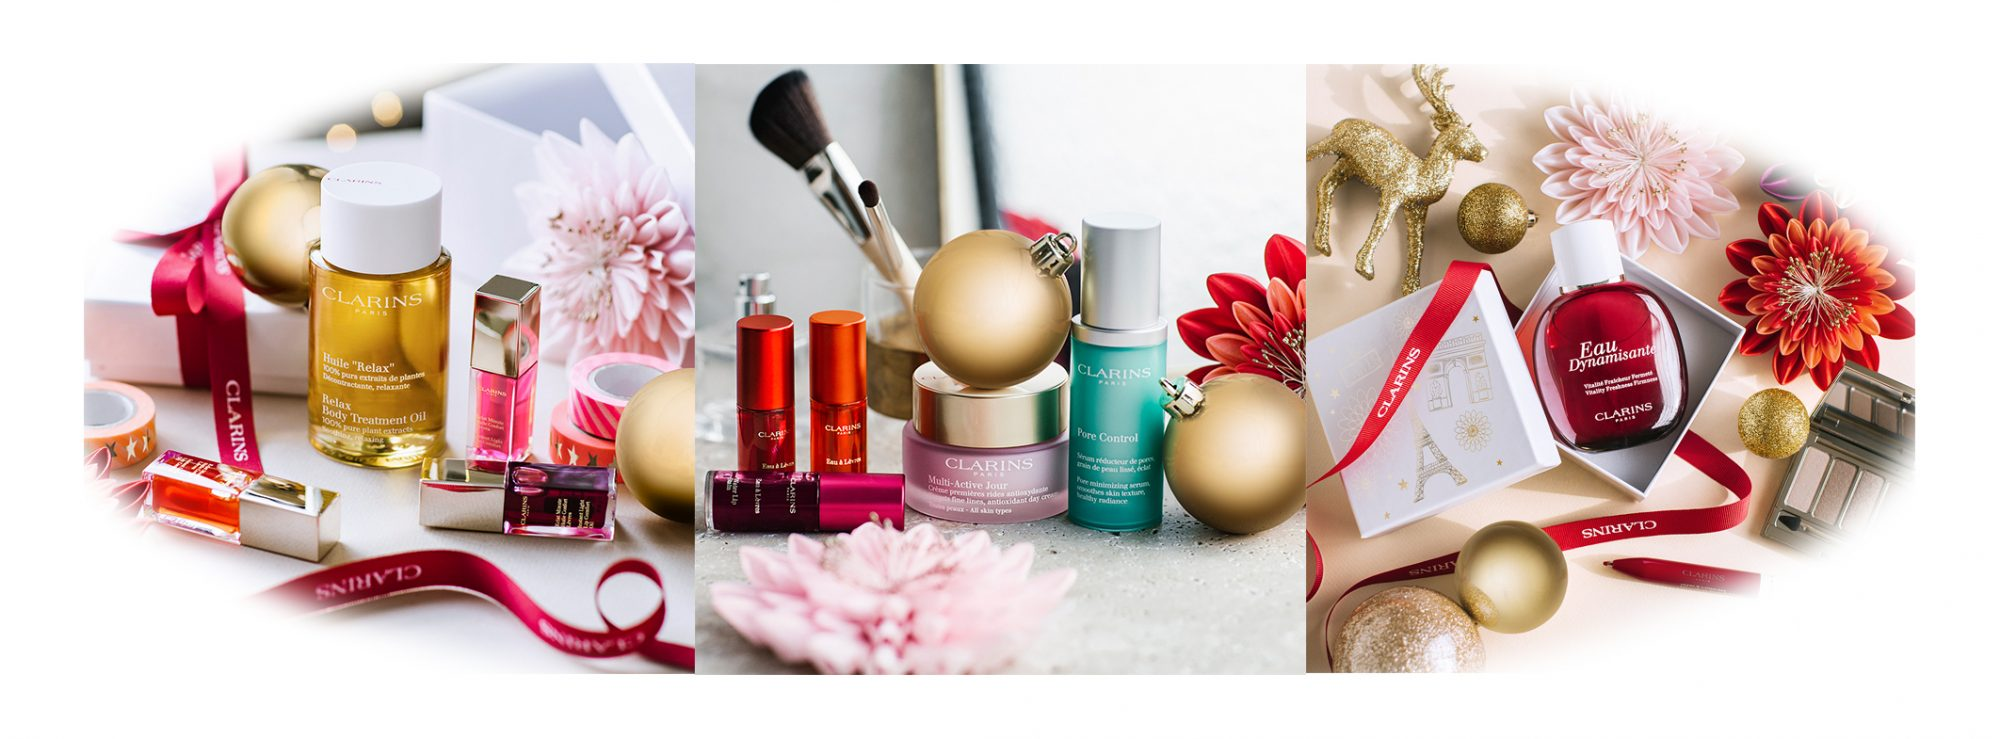 Clarins Christmas Makeup Square Collections Banner Xmas 2018